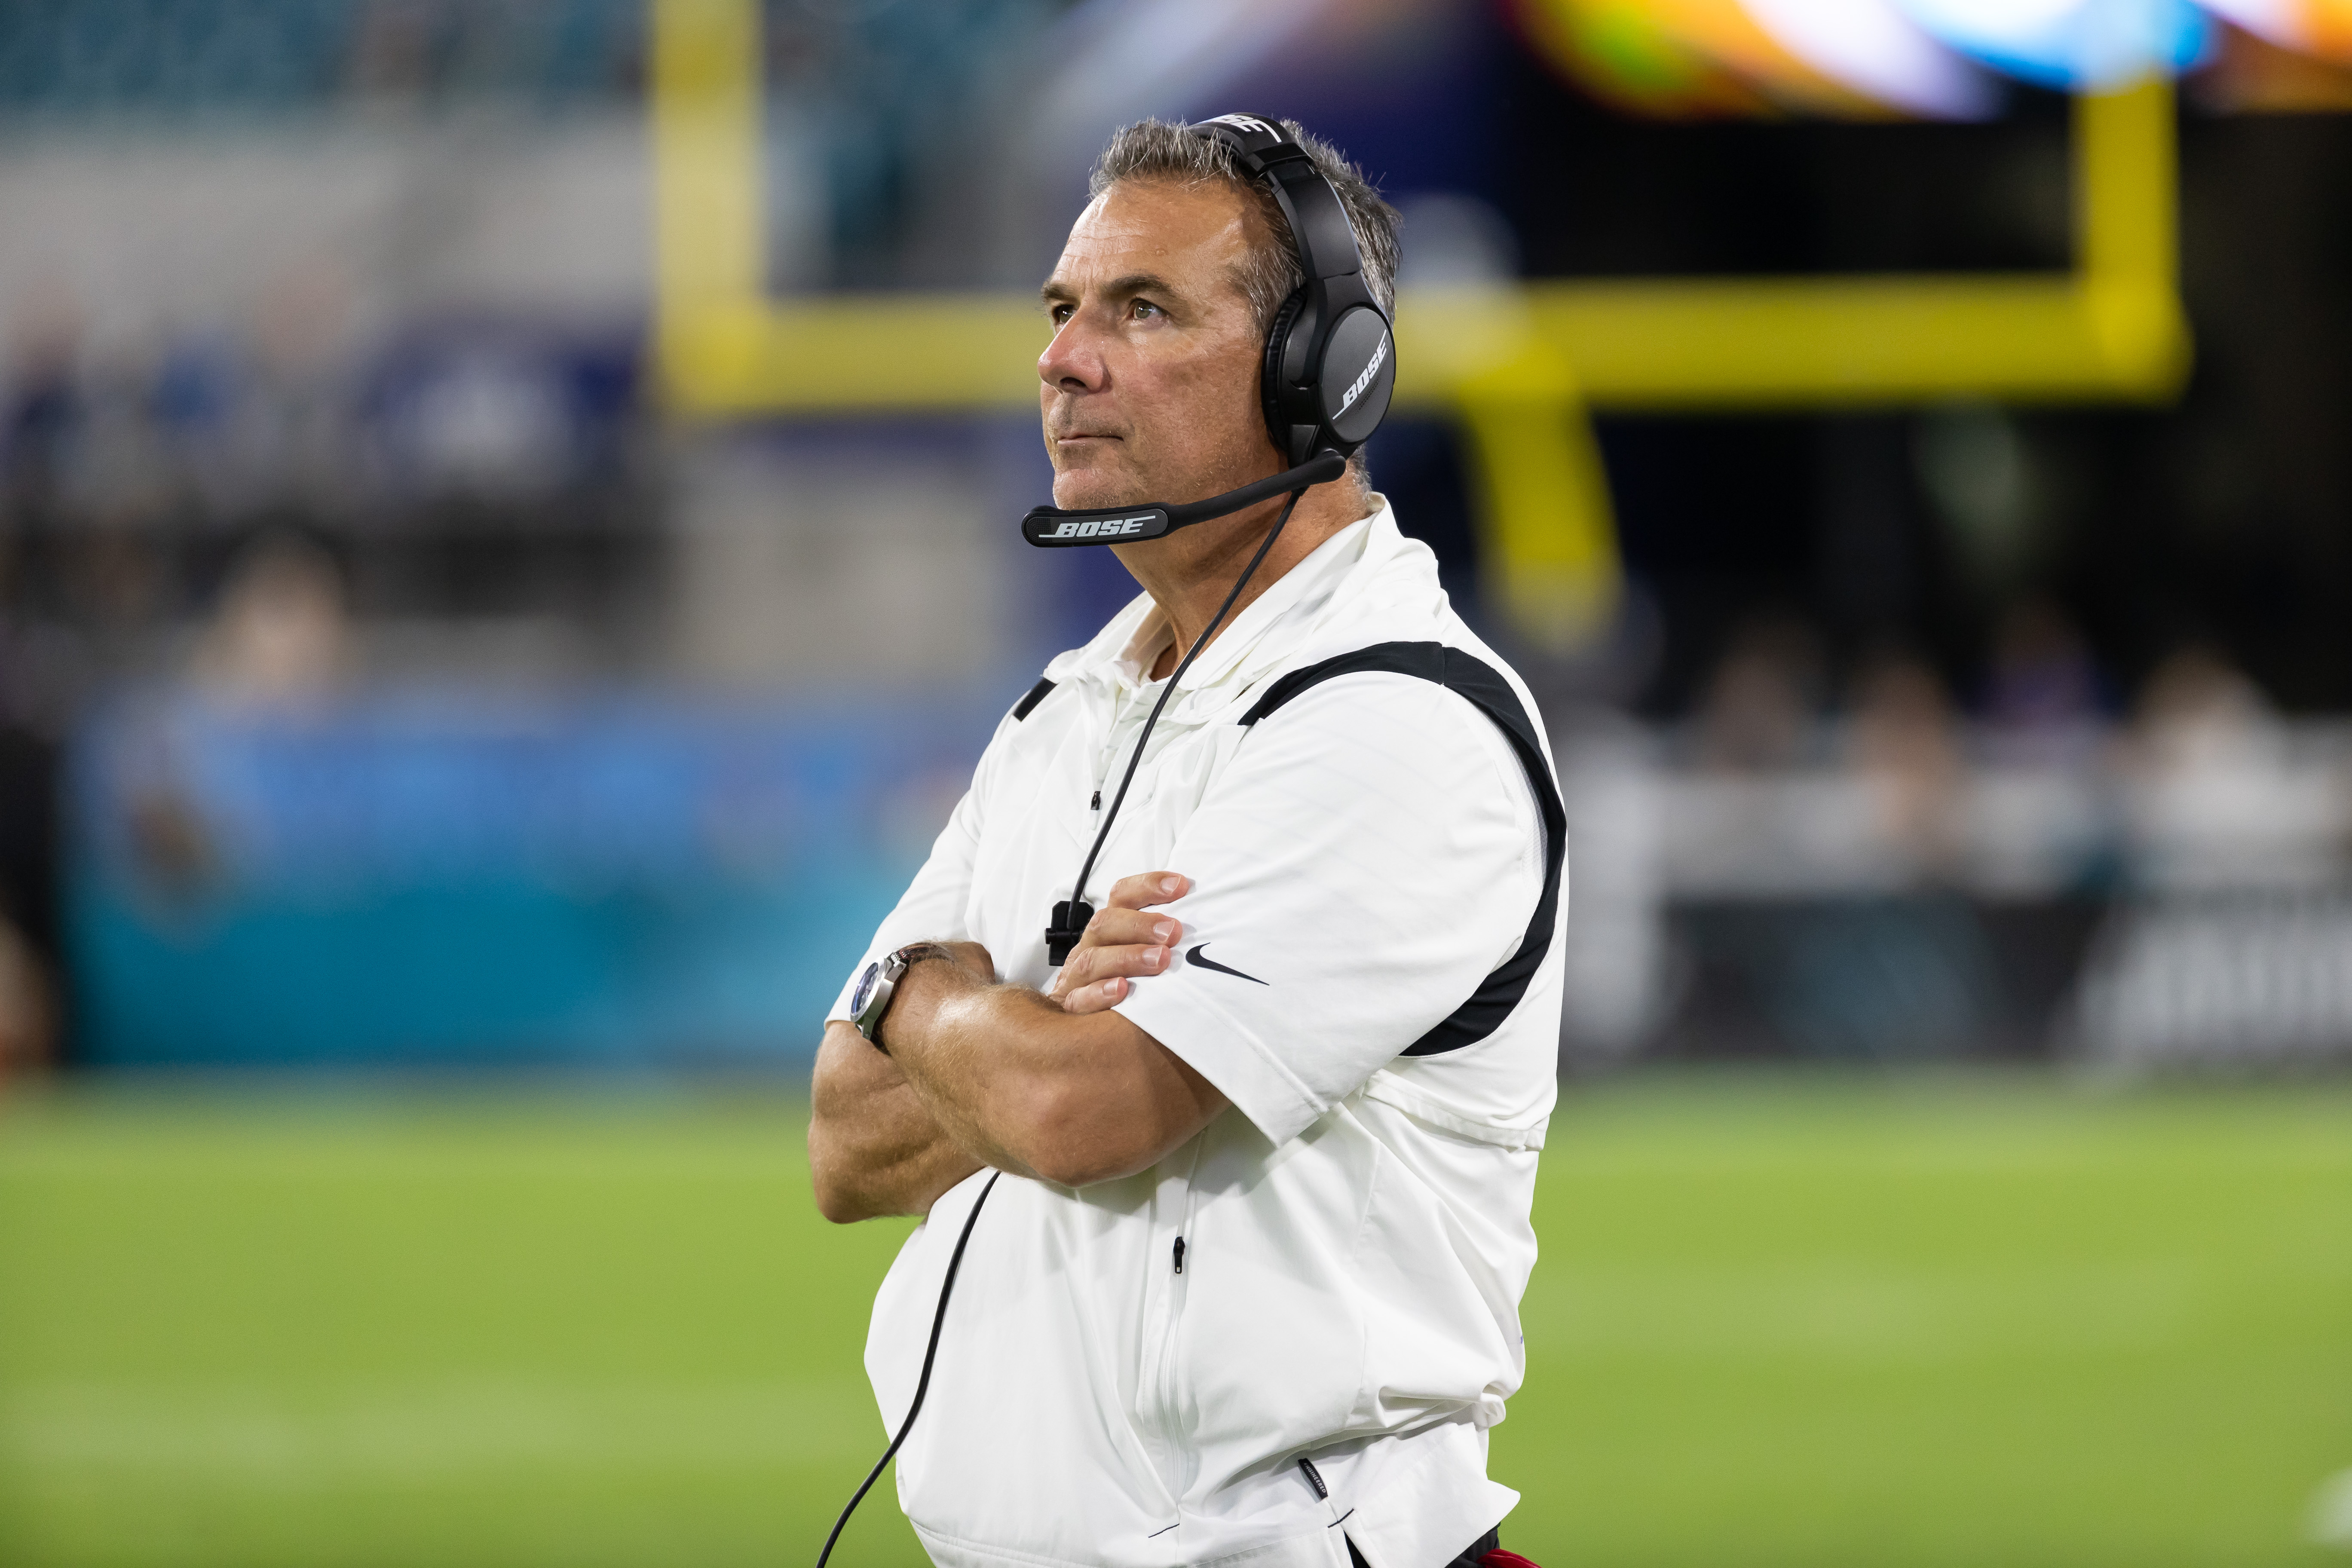 FILE PHOTO-Aug 14, 2021; Jacksonville, Florida, USA;  Jacksonville Jaguars head coach Urban Meyer looks at the clock in the fourth quarter against the Cleveland Browns at TIAA Bank Field. Mandatory Credit: Matt Pendleton-USA TODAY Sports